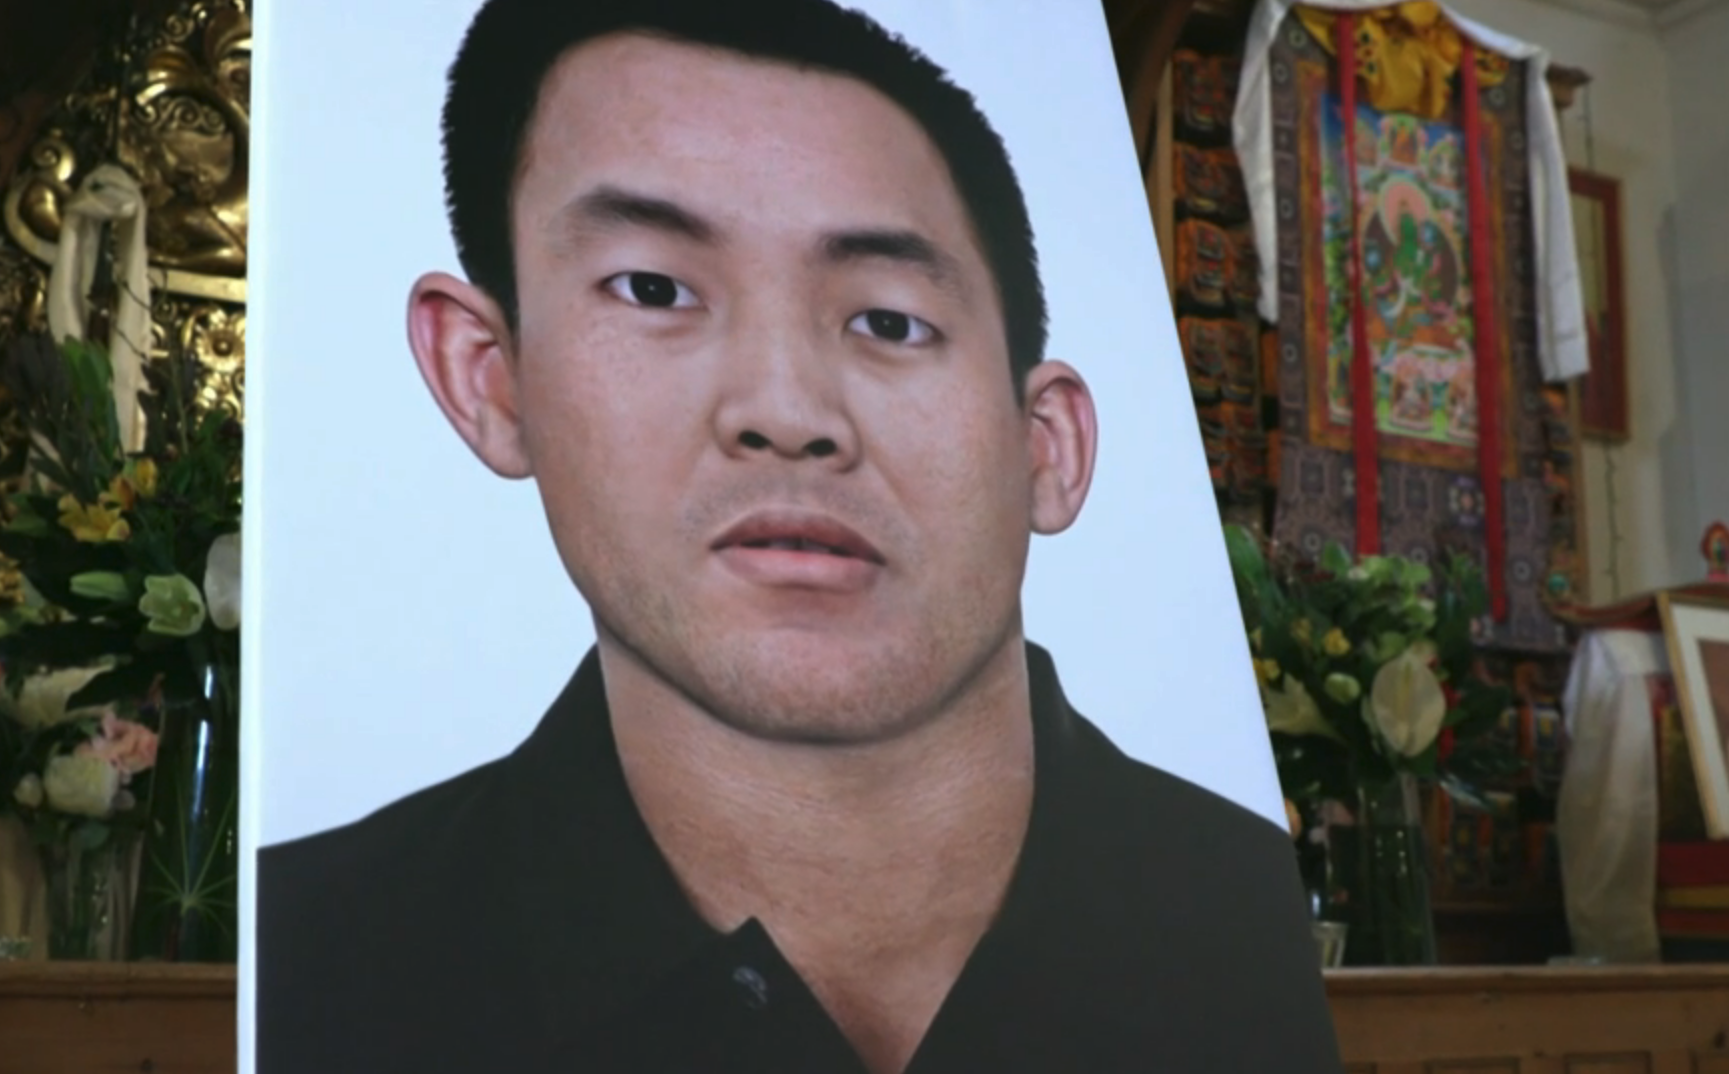 Artist's impression of how the Panchen Lama may appear today